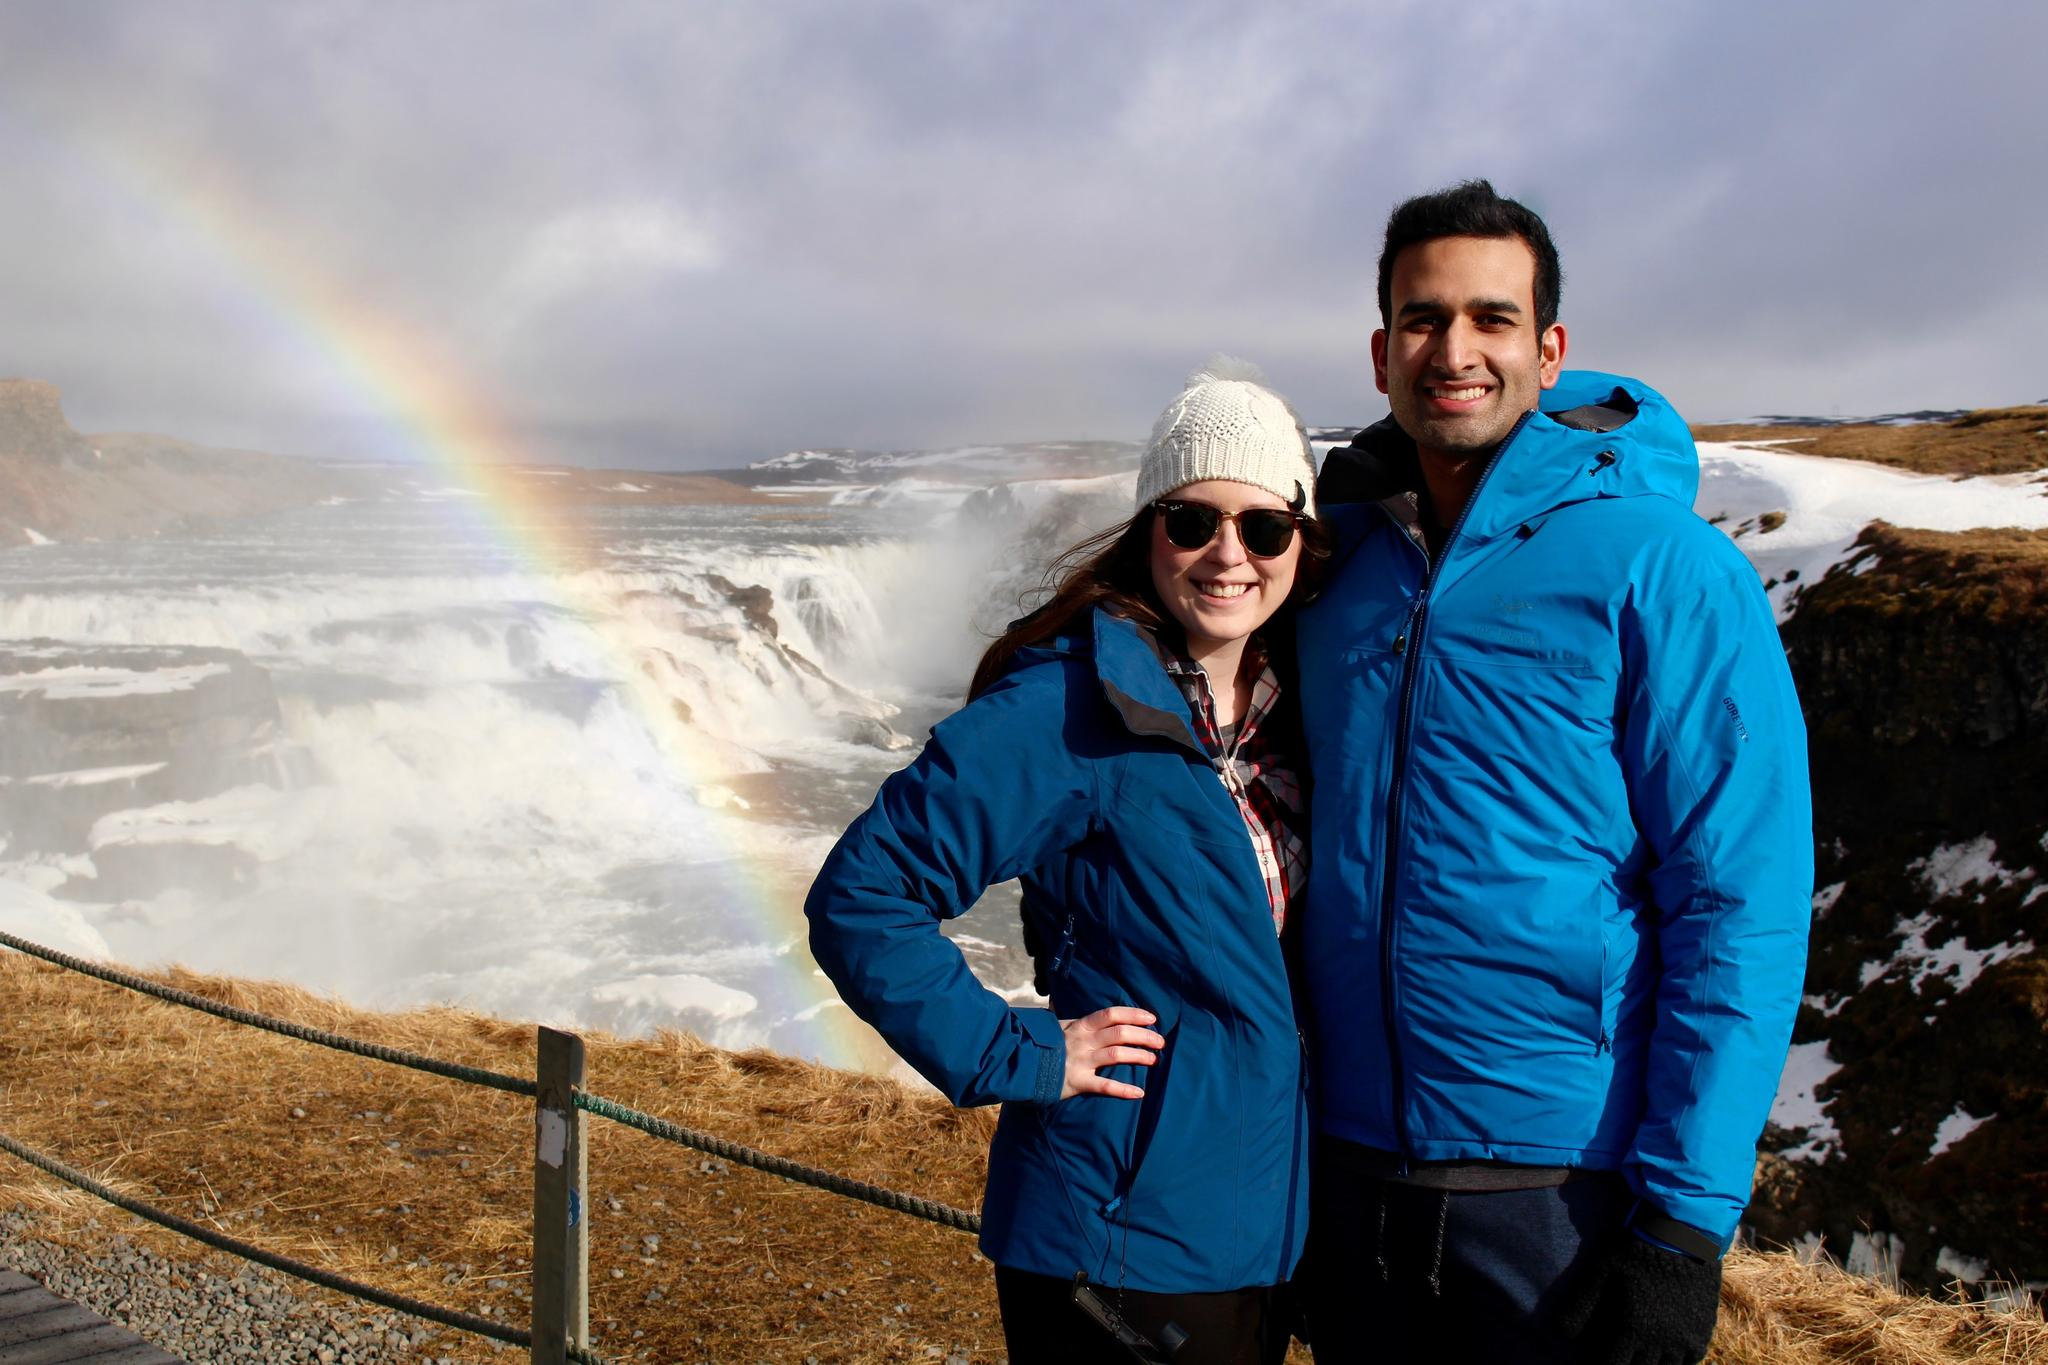 One of our favorite travel adventures was Iceland, here we are taking in the unbelievable beauty of Gullfoss waterfall.